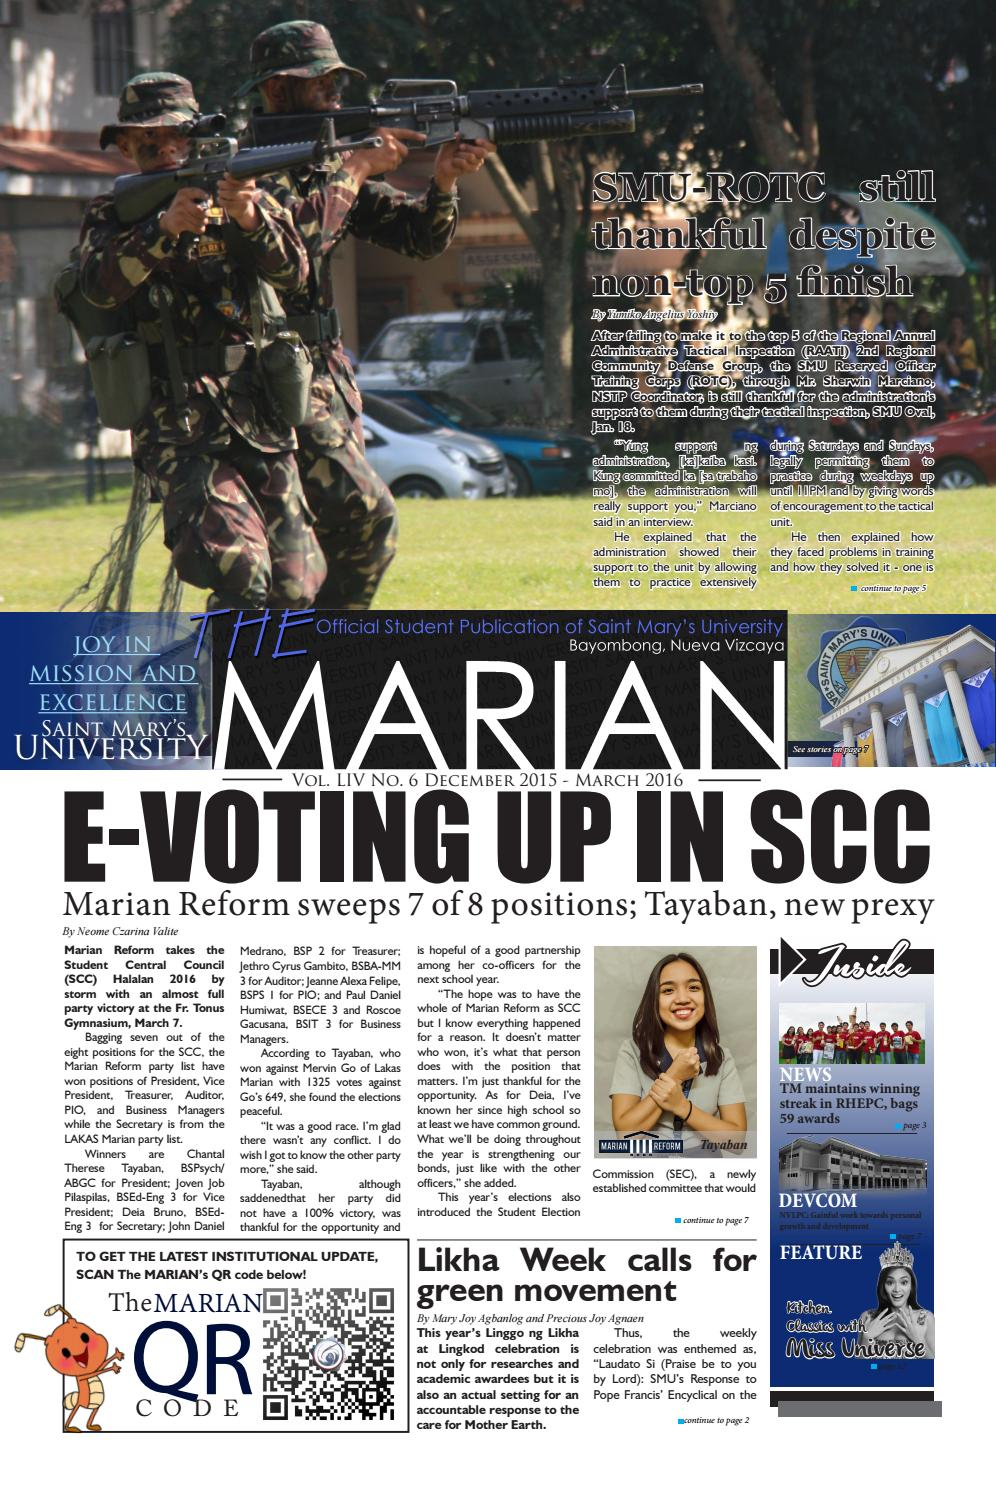 The MARIAN Tabloid December 2015 - March 2016 by Emman Jose